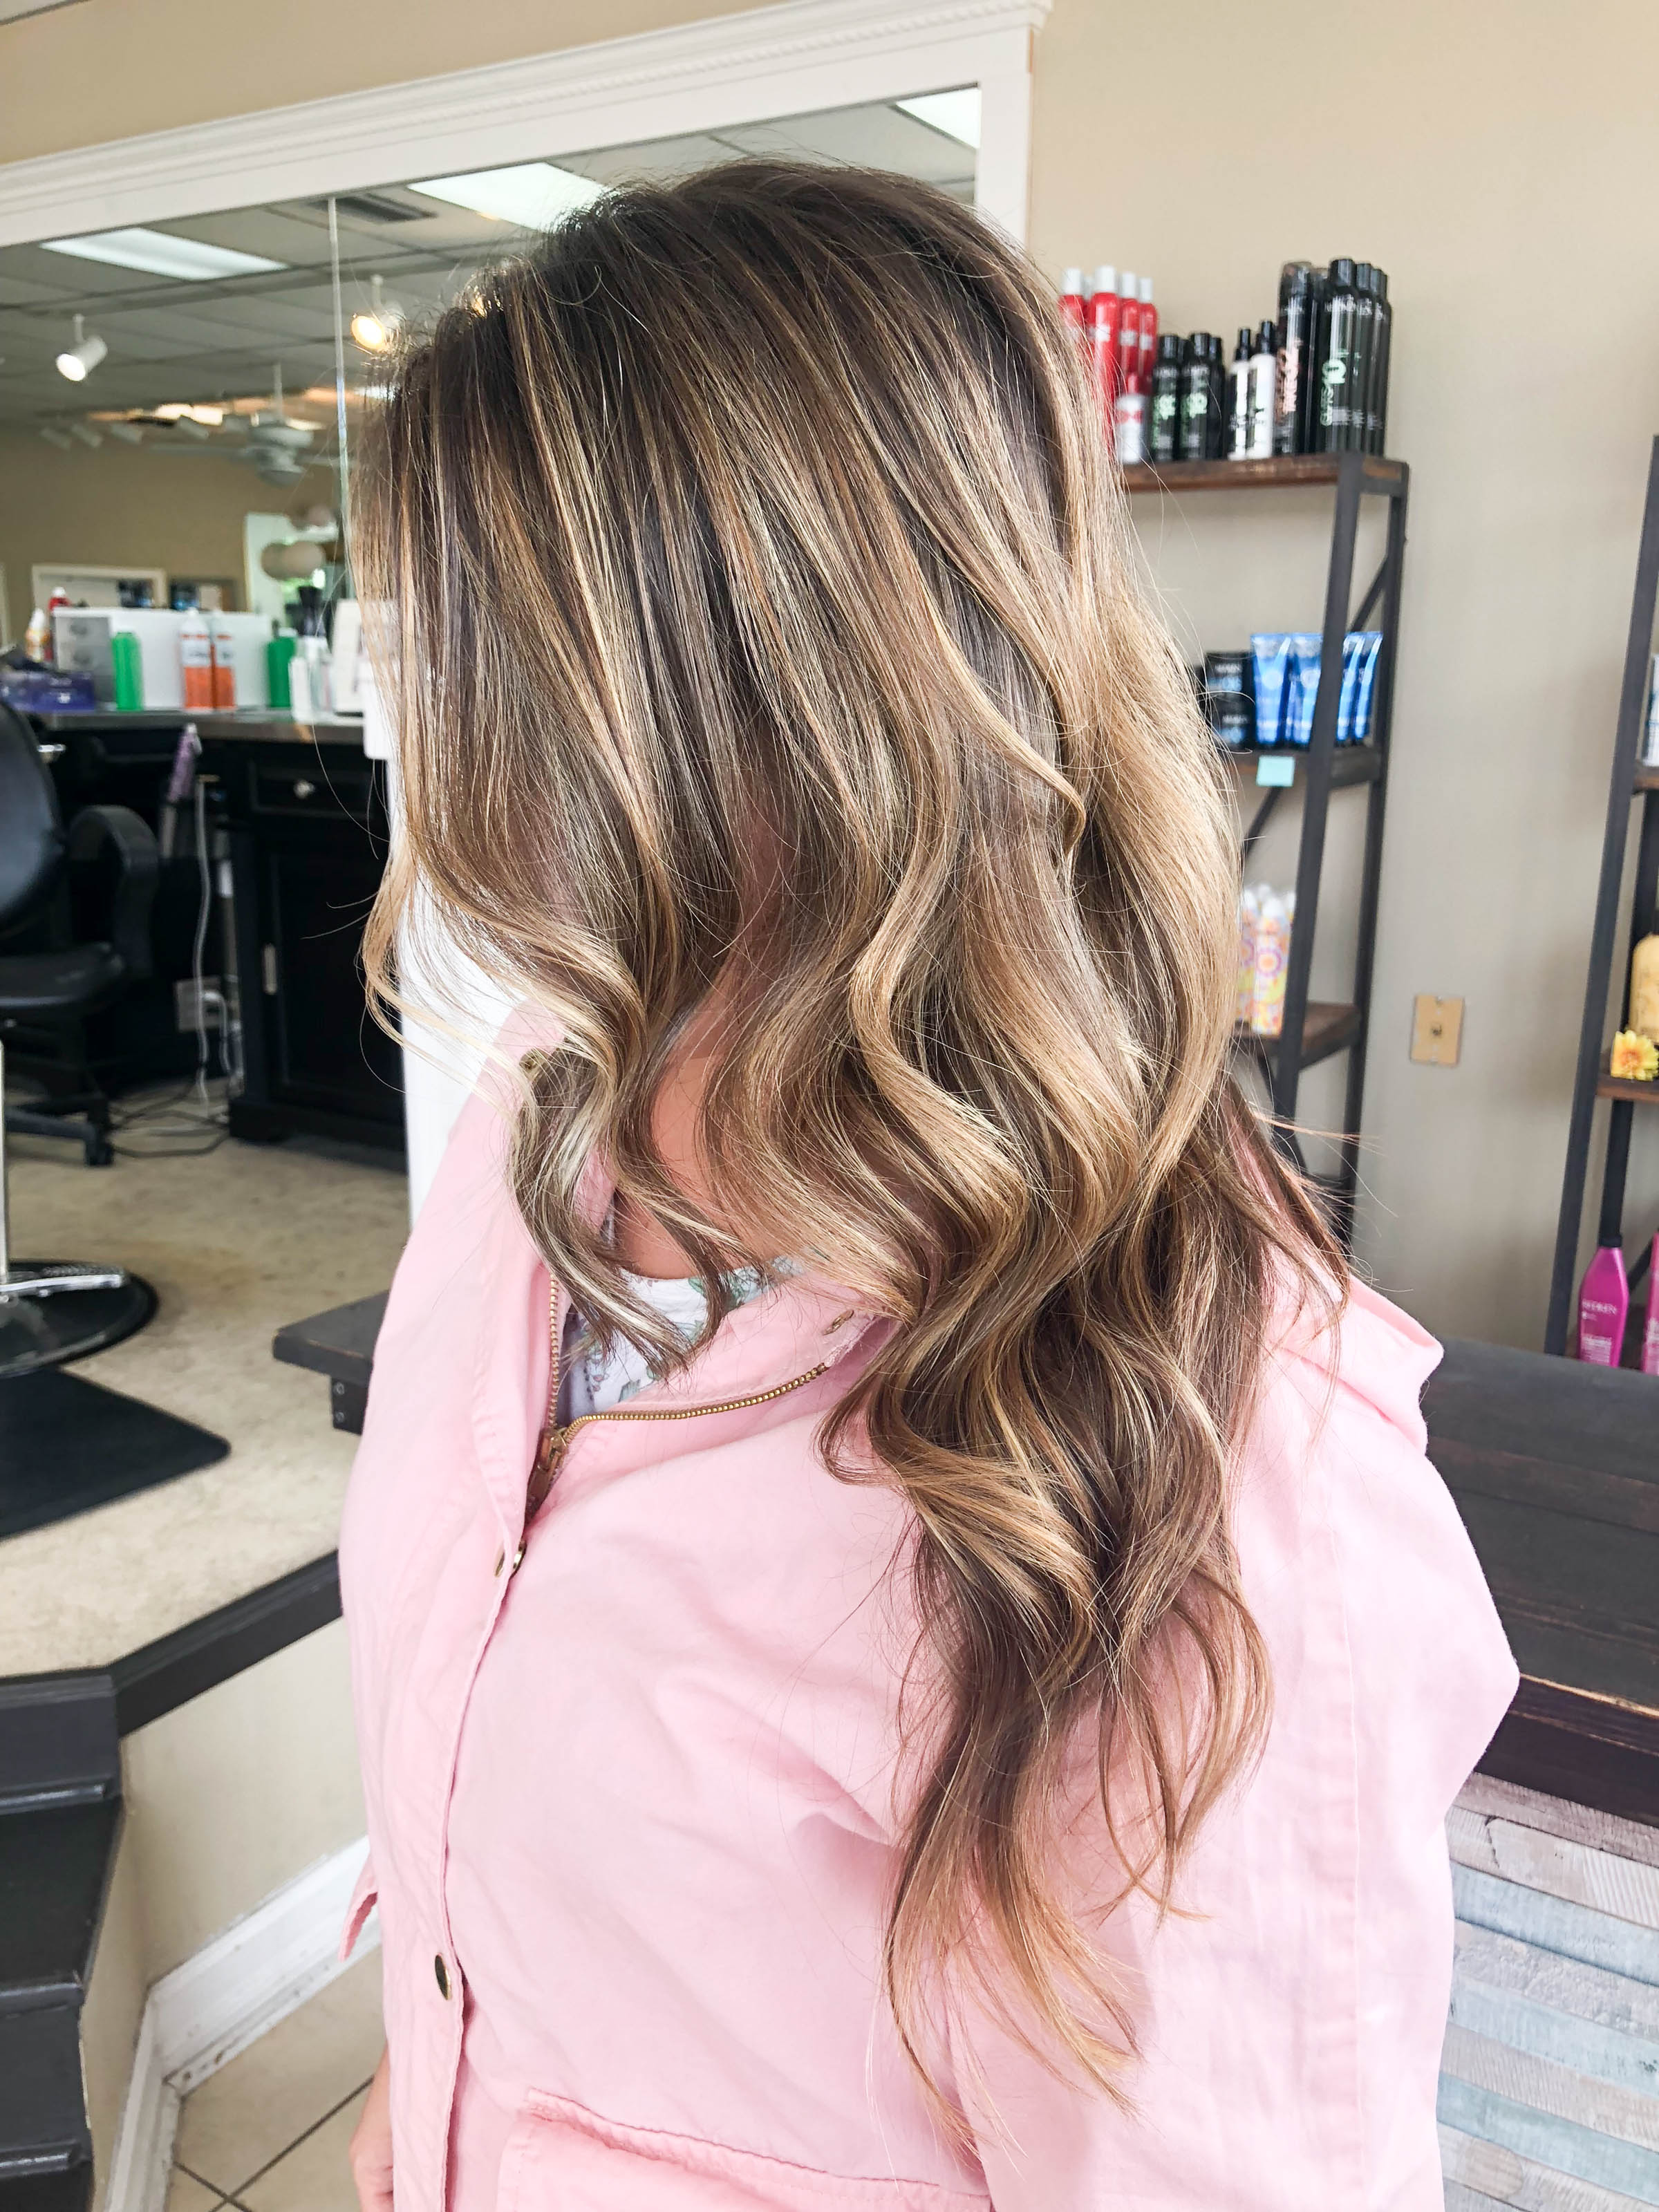 NEW HAIRSTYLE FOR SUMMER – BRUNETTE BALAYAGE